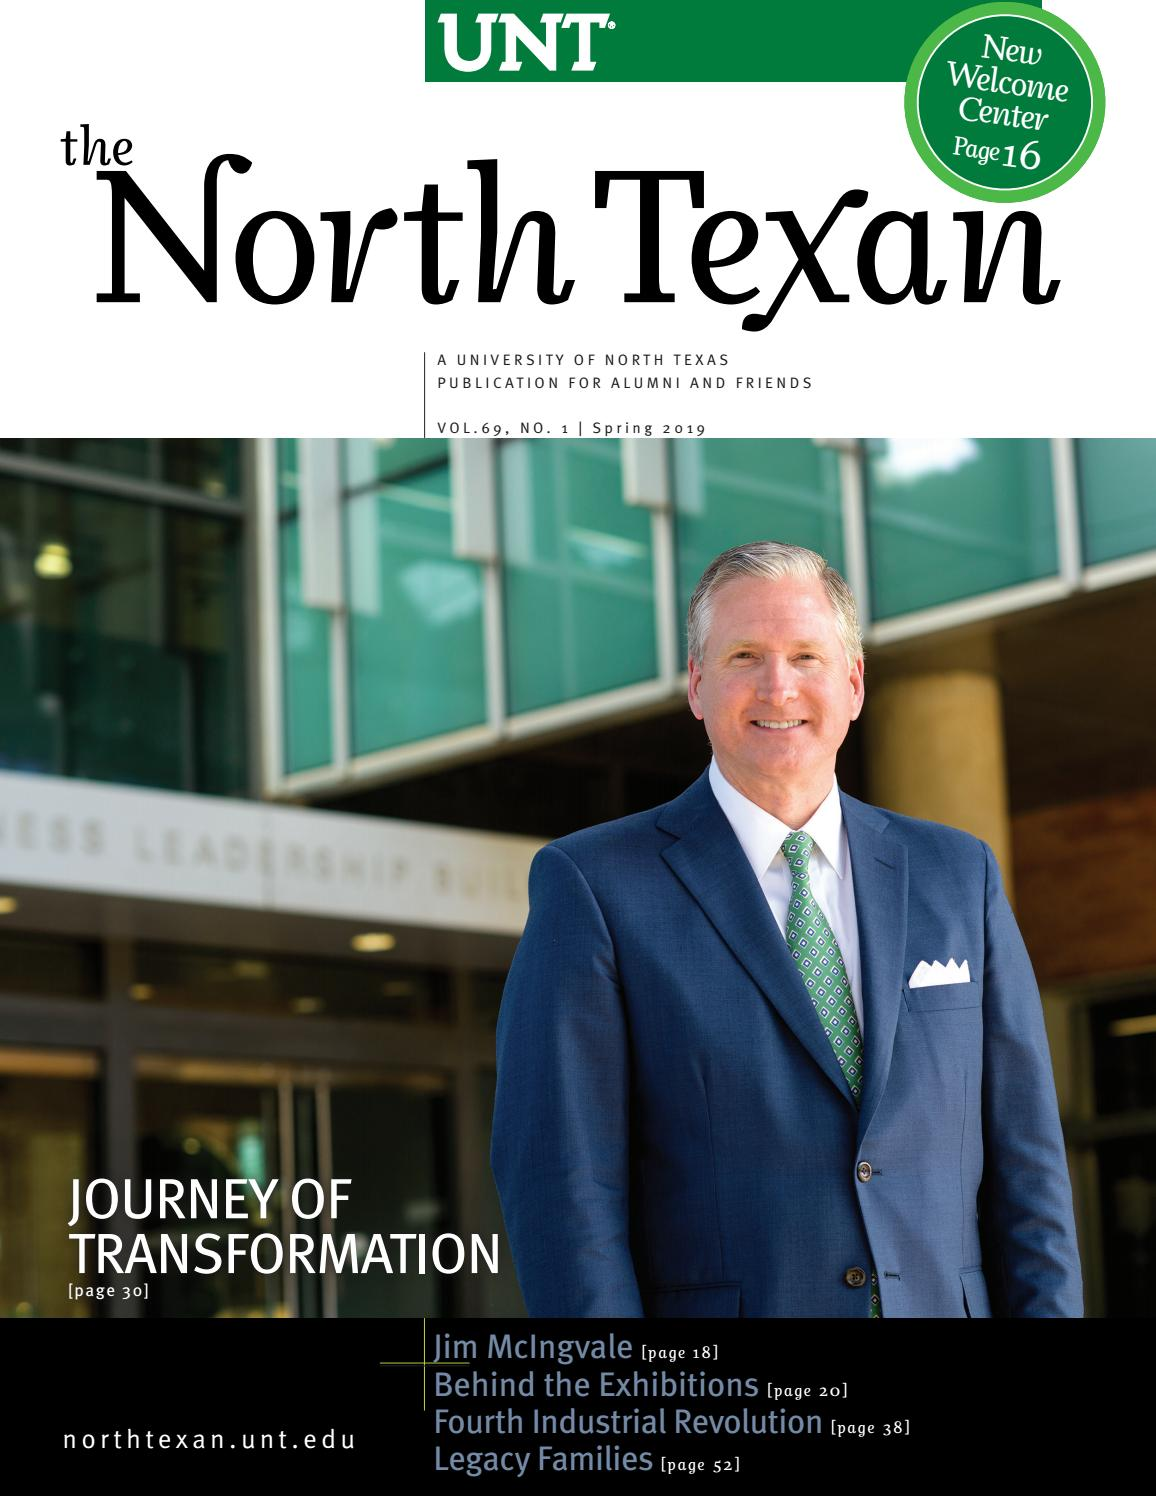 1e8403148ef8a3 The North Texan - UNT Alumni Magazine - Spring 2019 by University of North  Texas - issuu